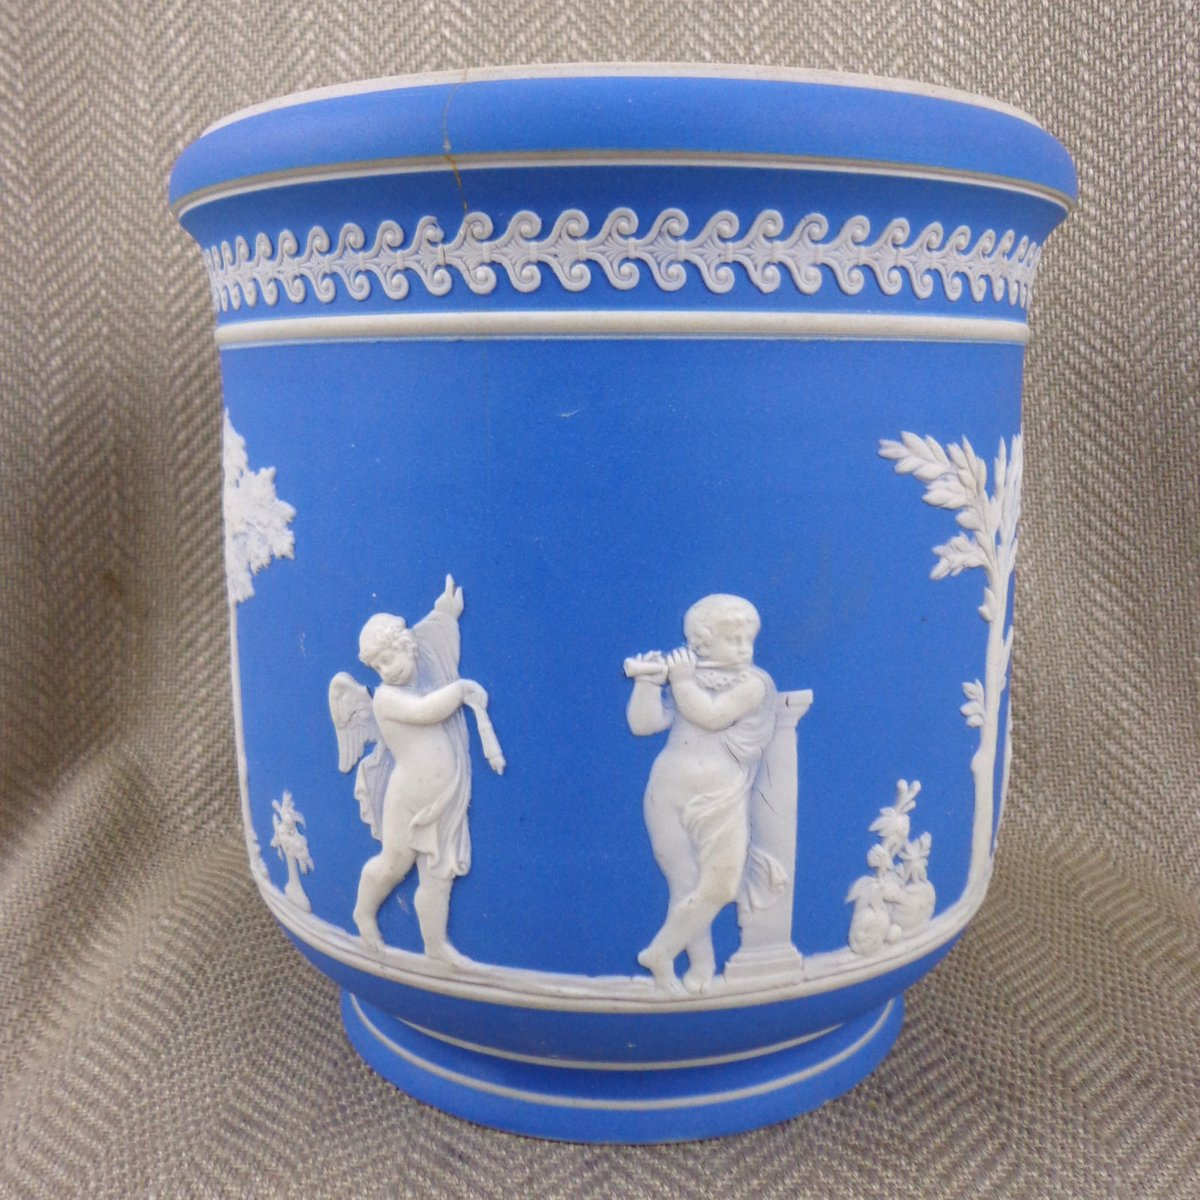 Large Antique Wedgwood Jardiniere #Antique #Antiques #Wedgwood #Victorian #HomeDecor #HousePlants  http:// ebay.eu/2ob77Wz  &nbsp;  <br>http://pic.twitter.com/9yJ5qJ4BLj